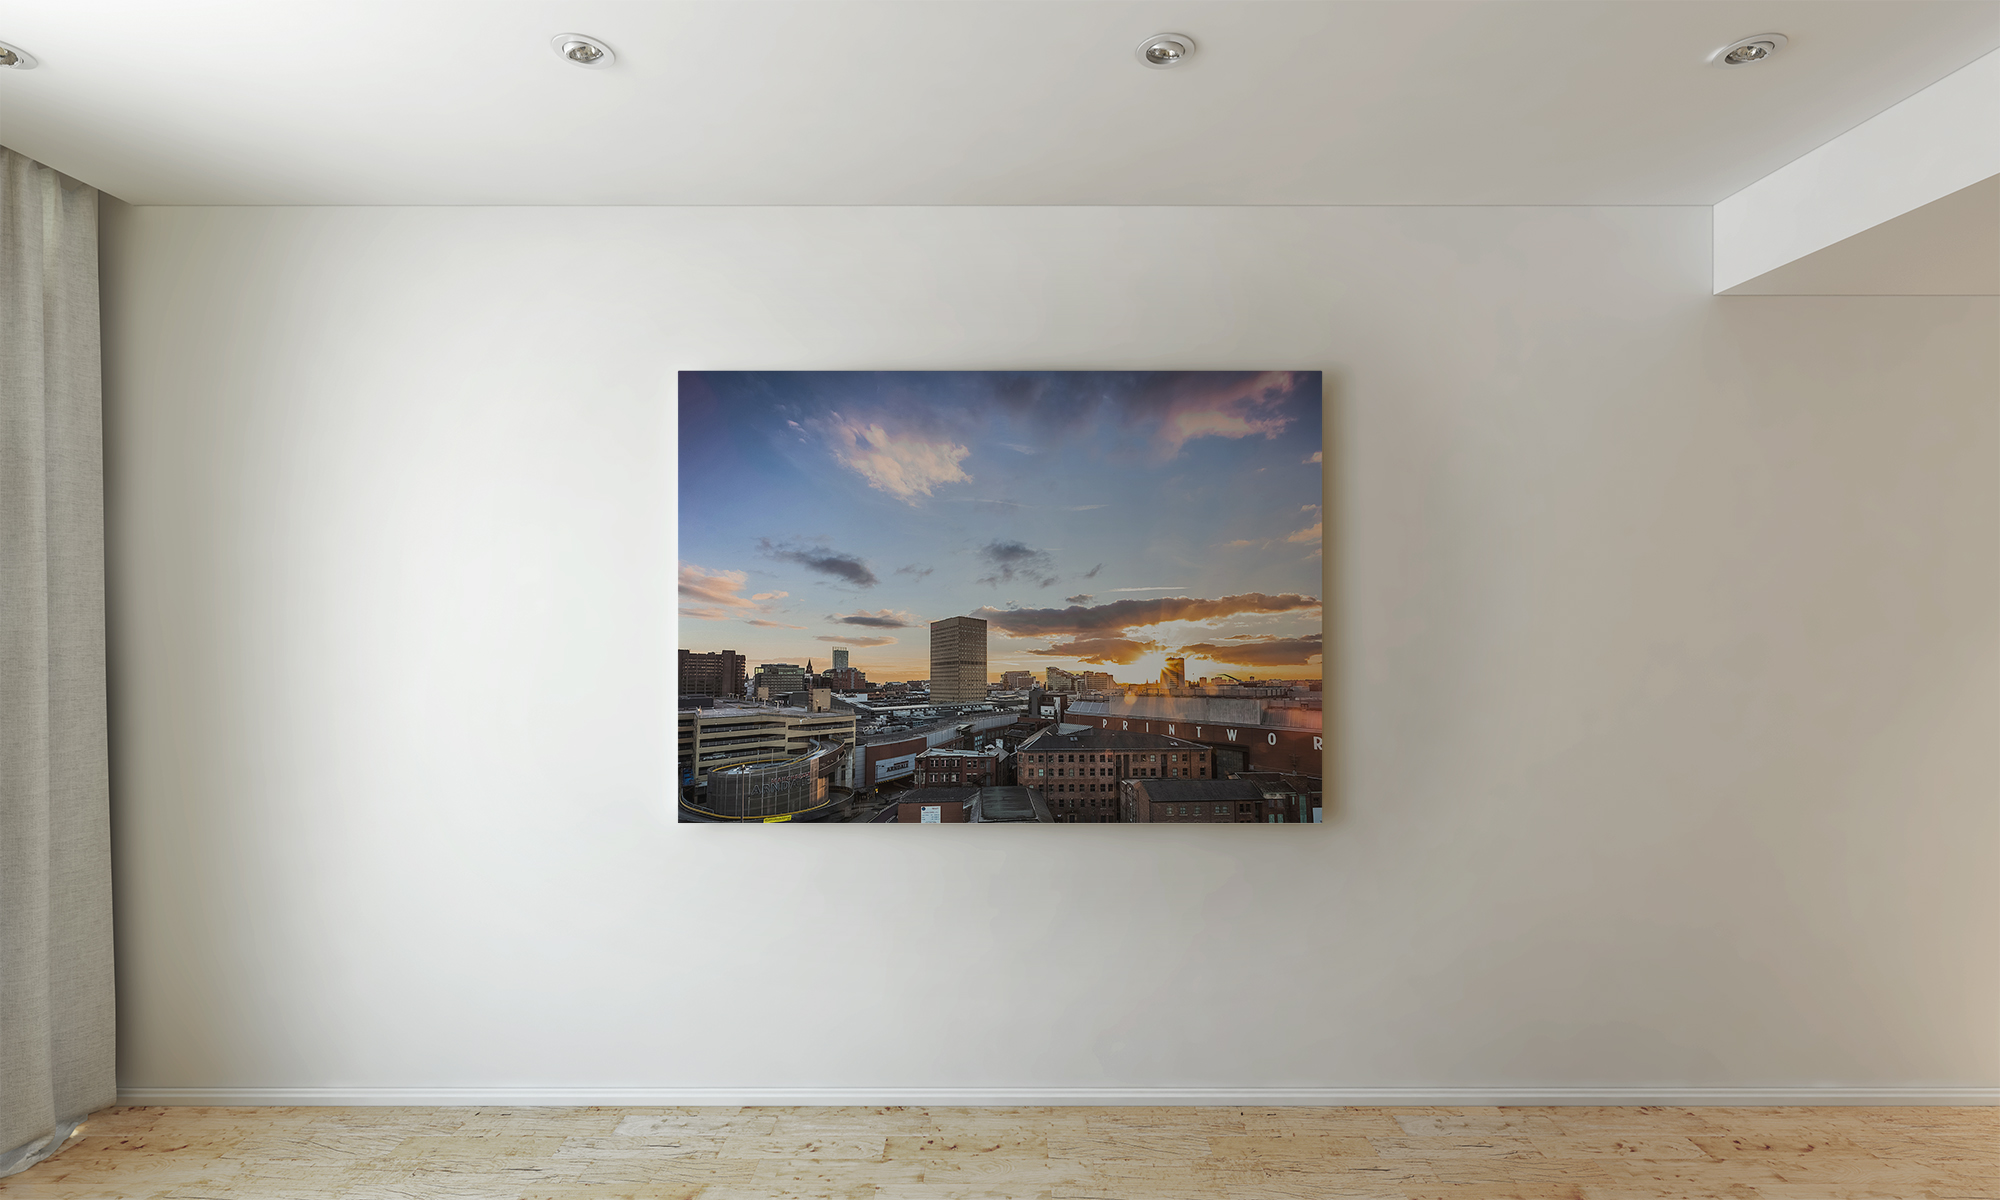 My fine art landscape canvas can make a great wall art feature for your home or office.